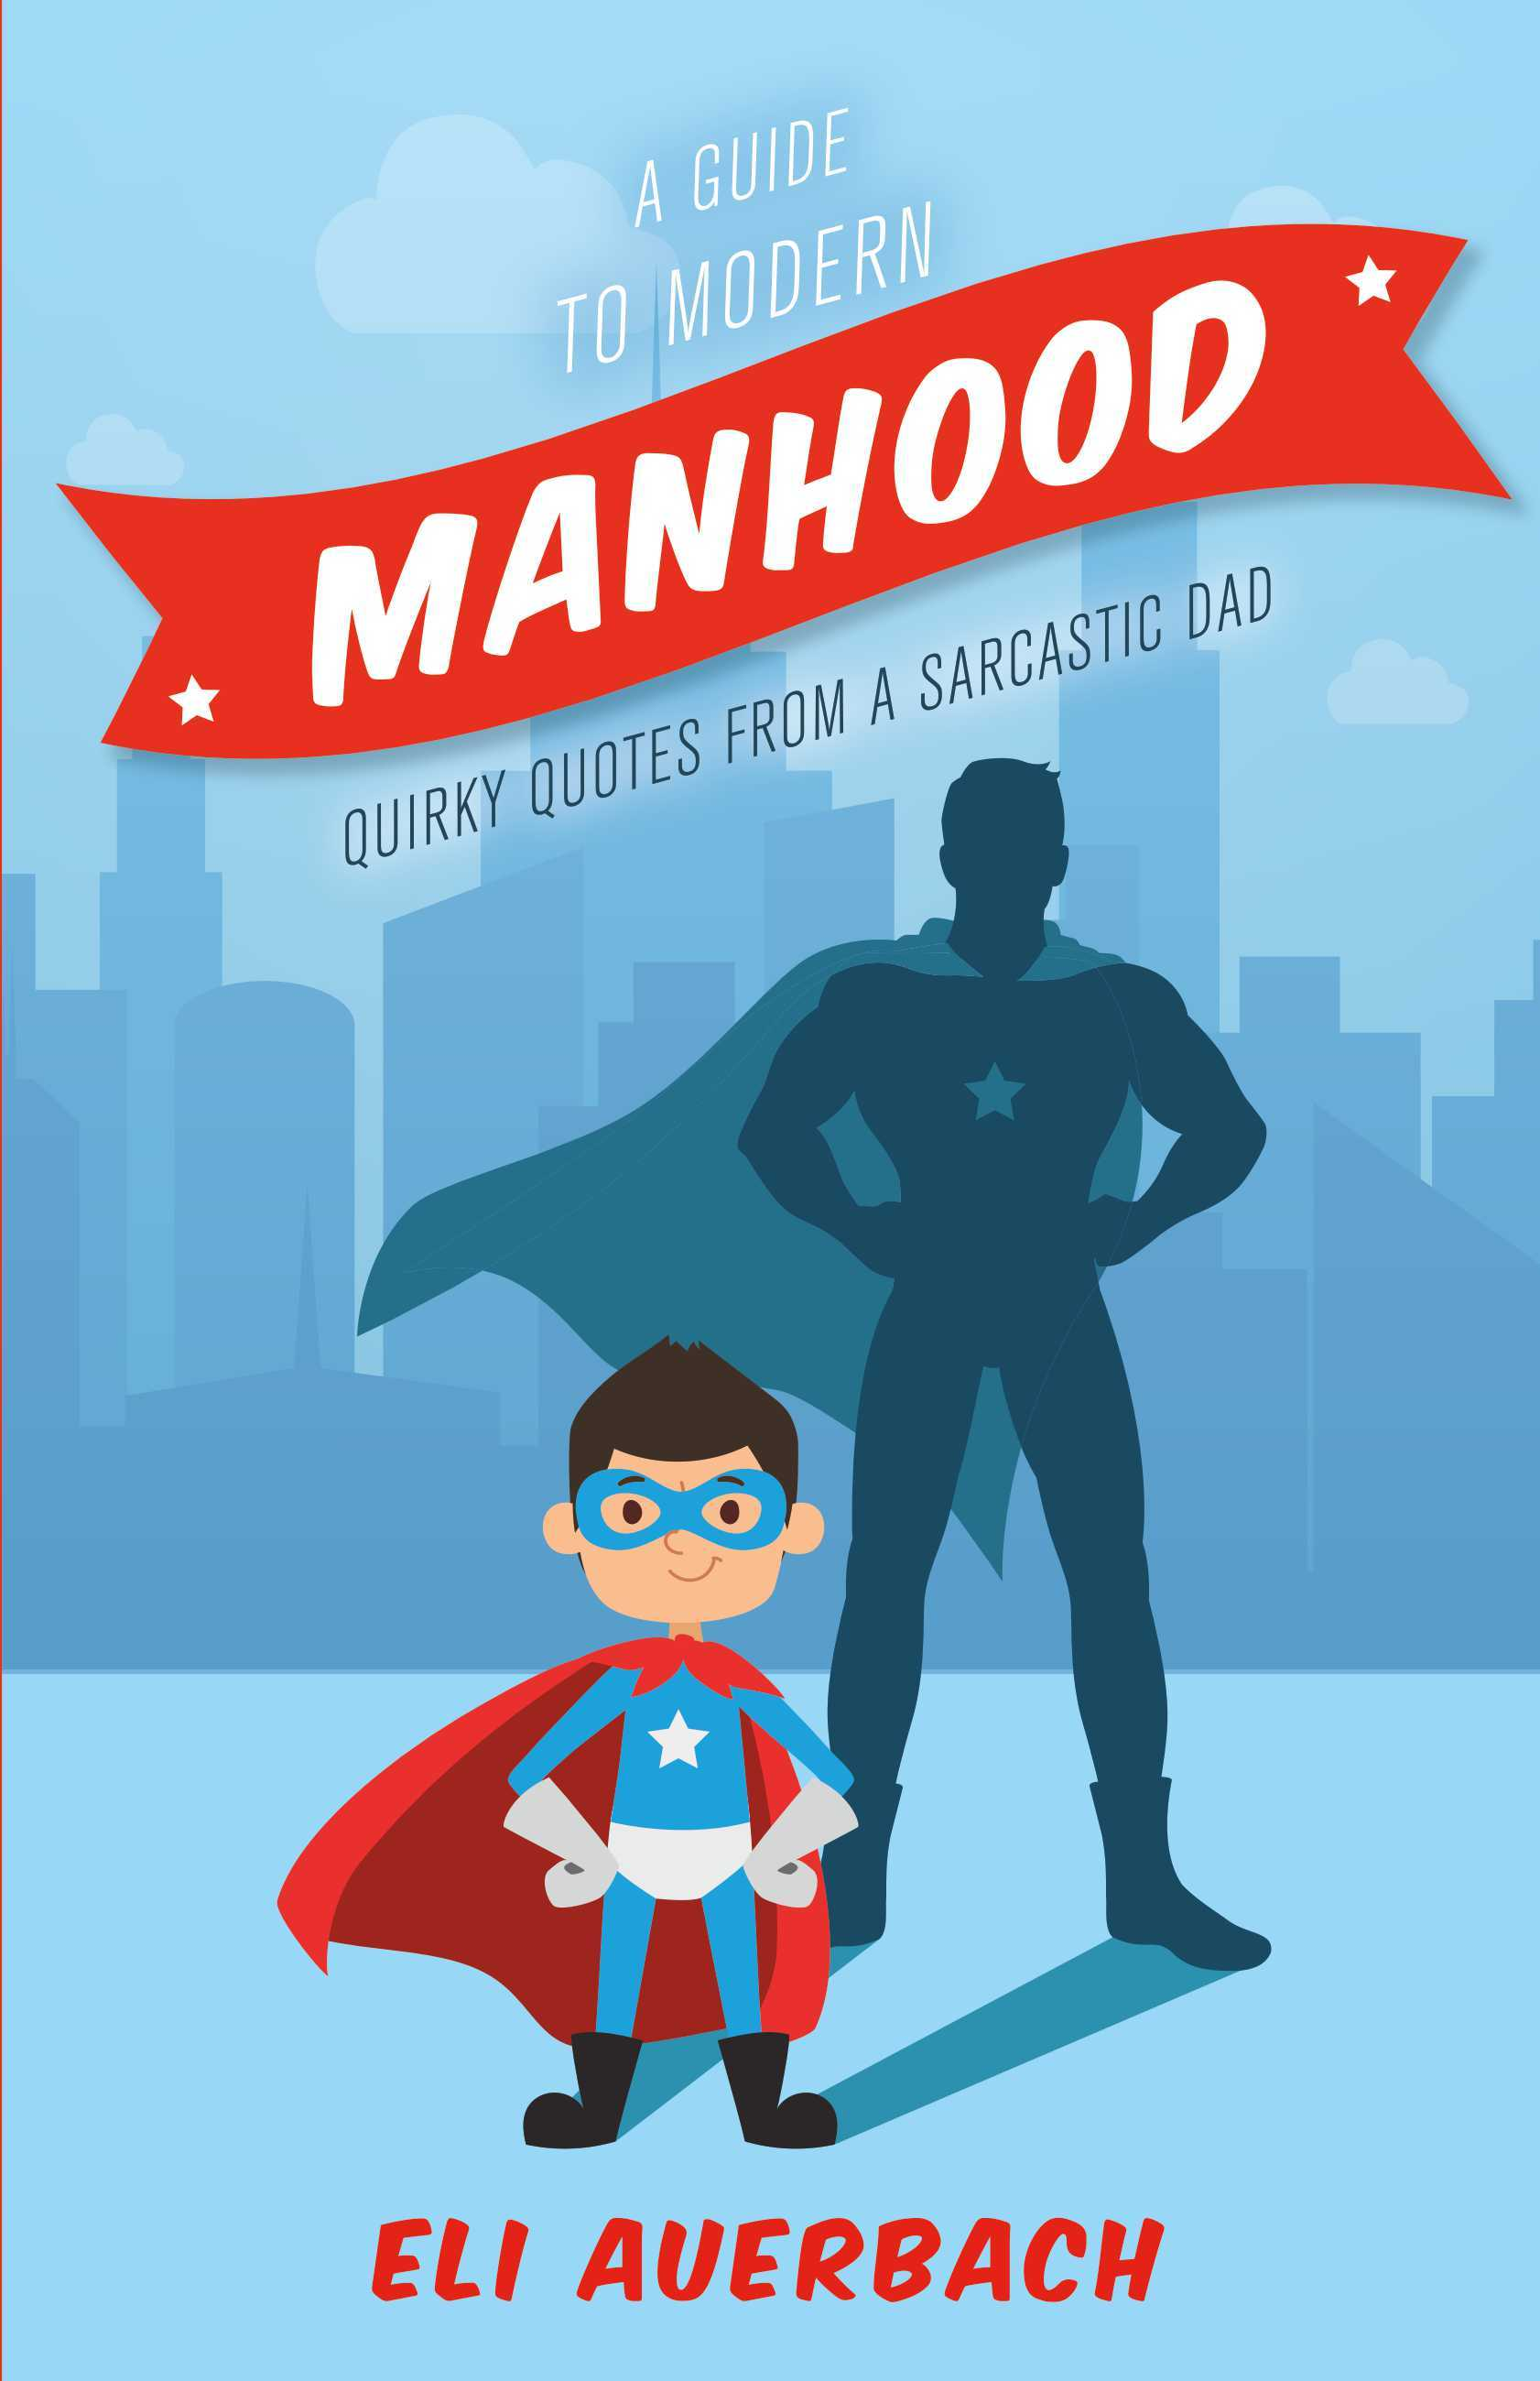 A Guide to Modern Manhood Quirky Quotes from a Sarcastic Dad